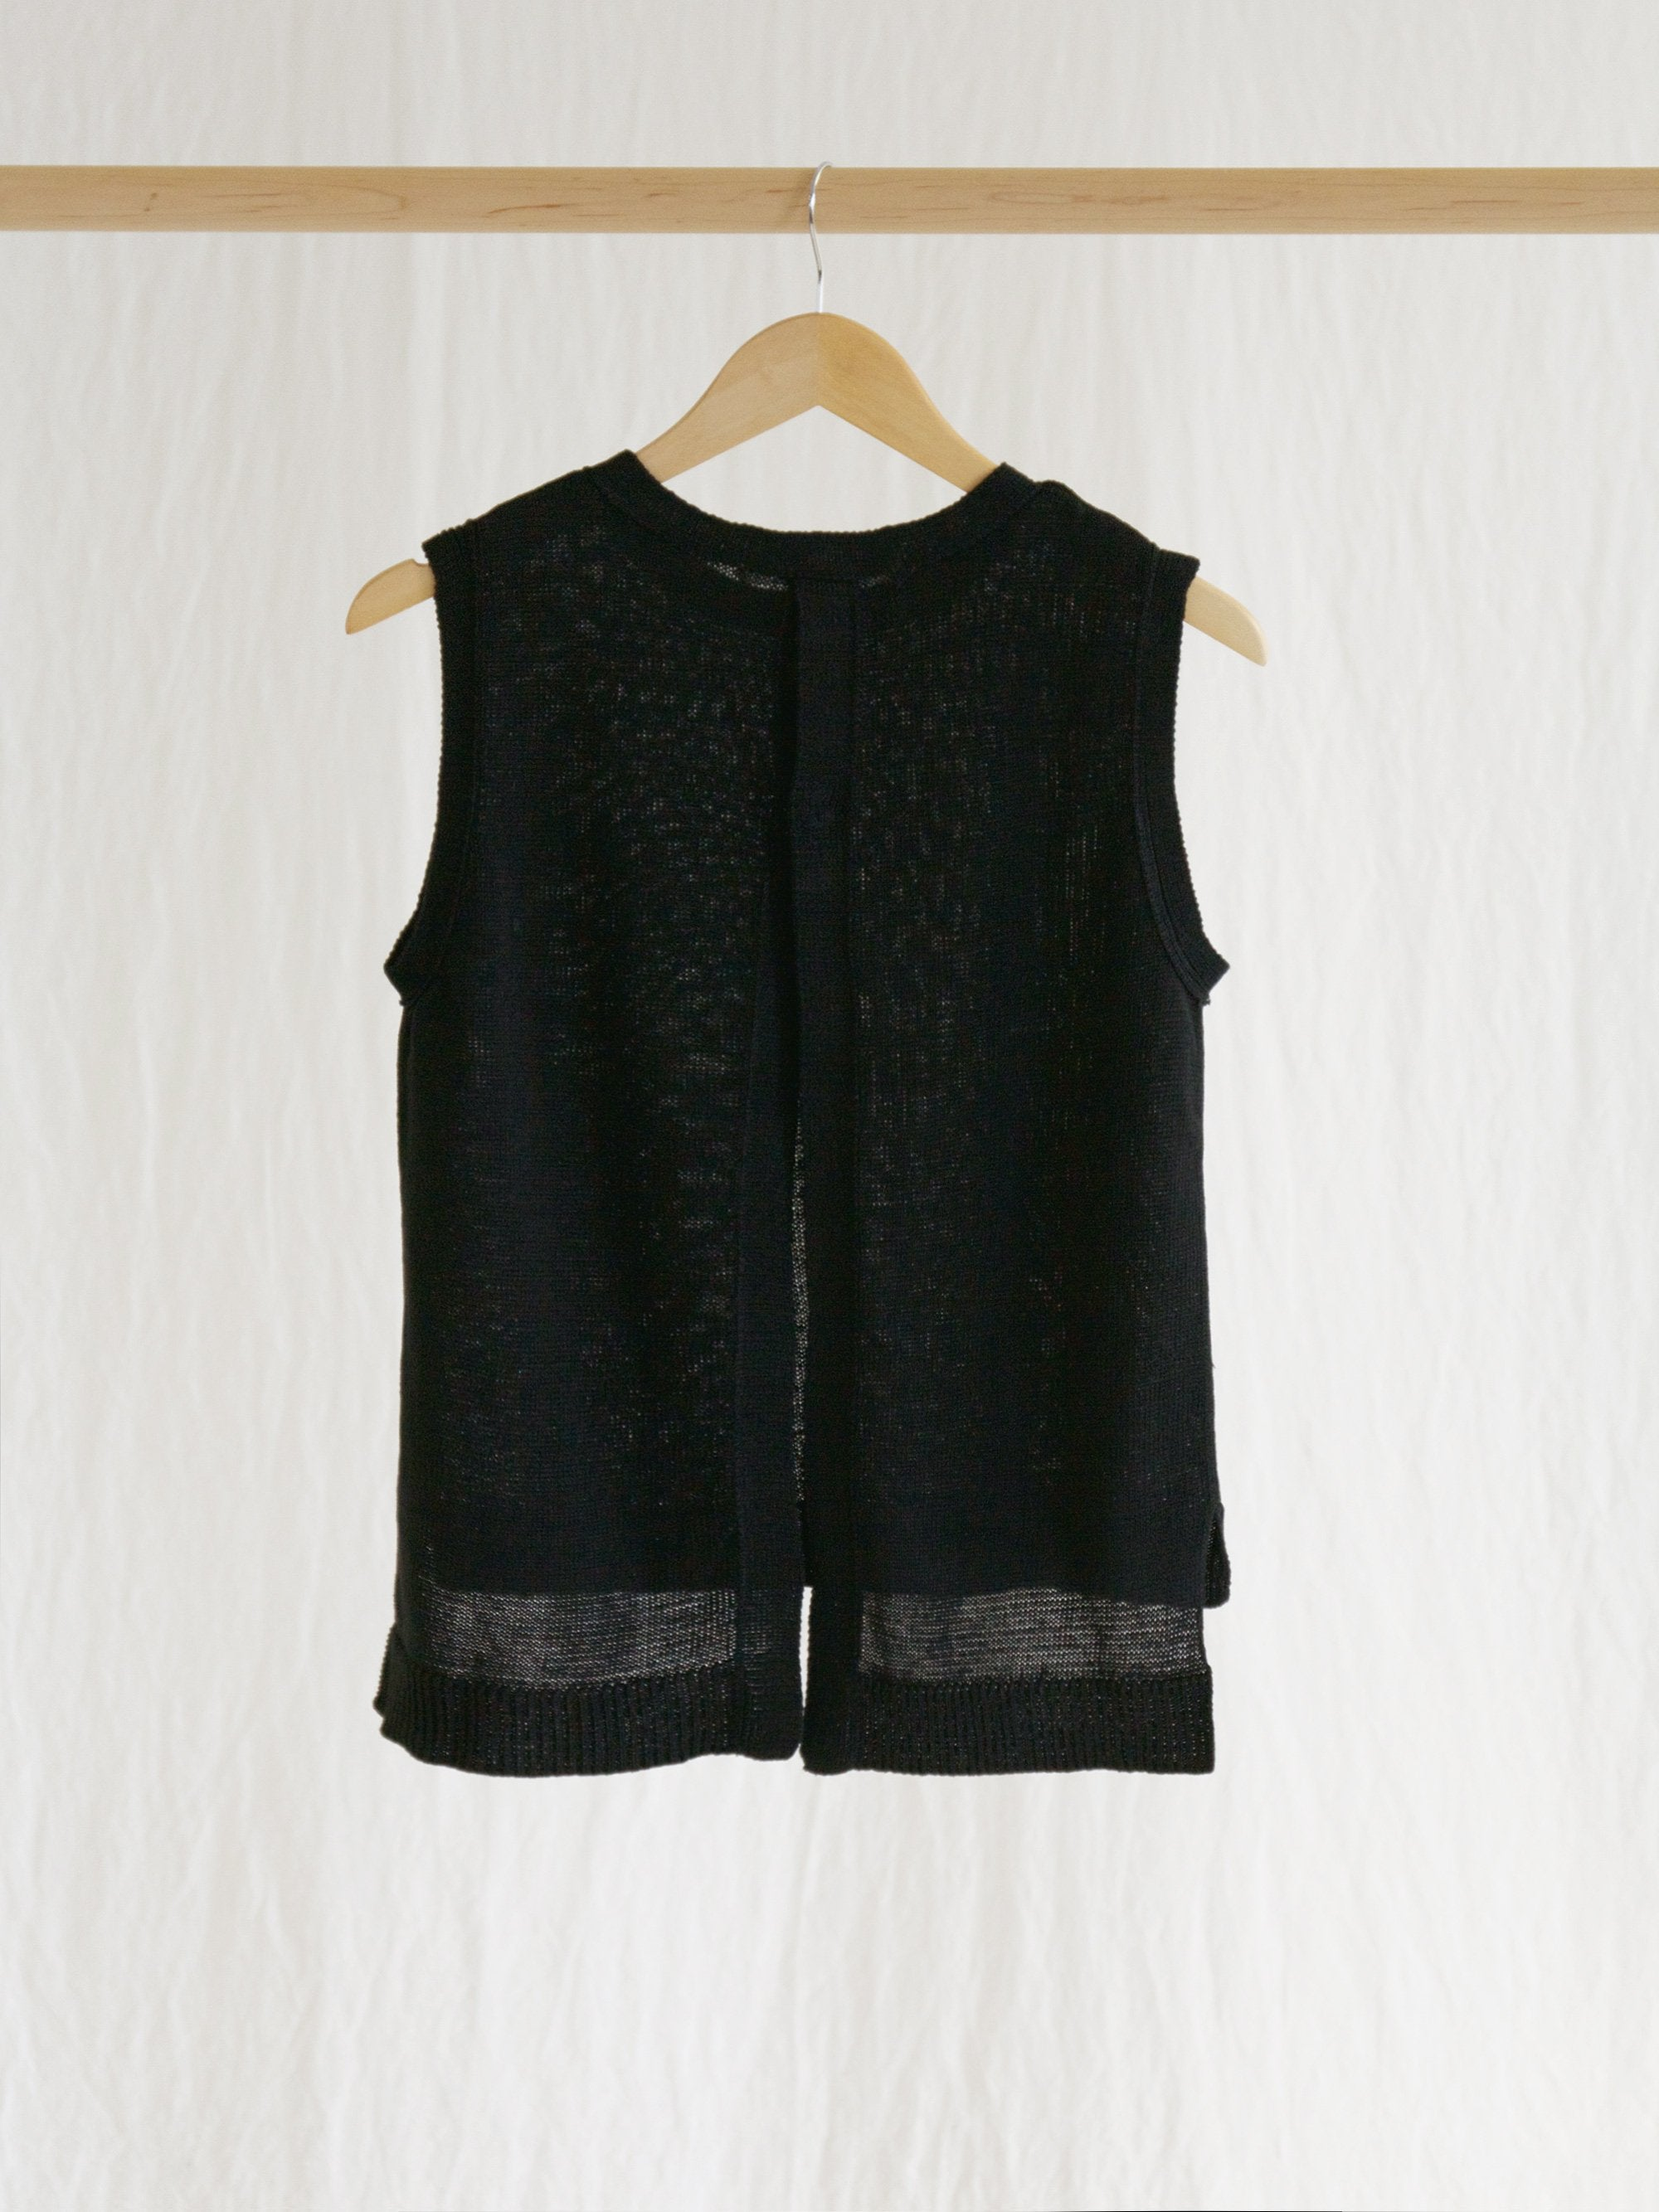 Namu Shop - Veritecoeur Linen Vest - Black